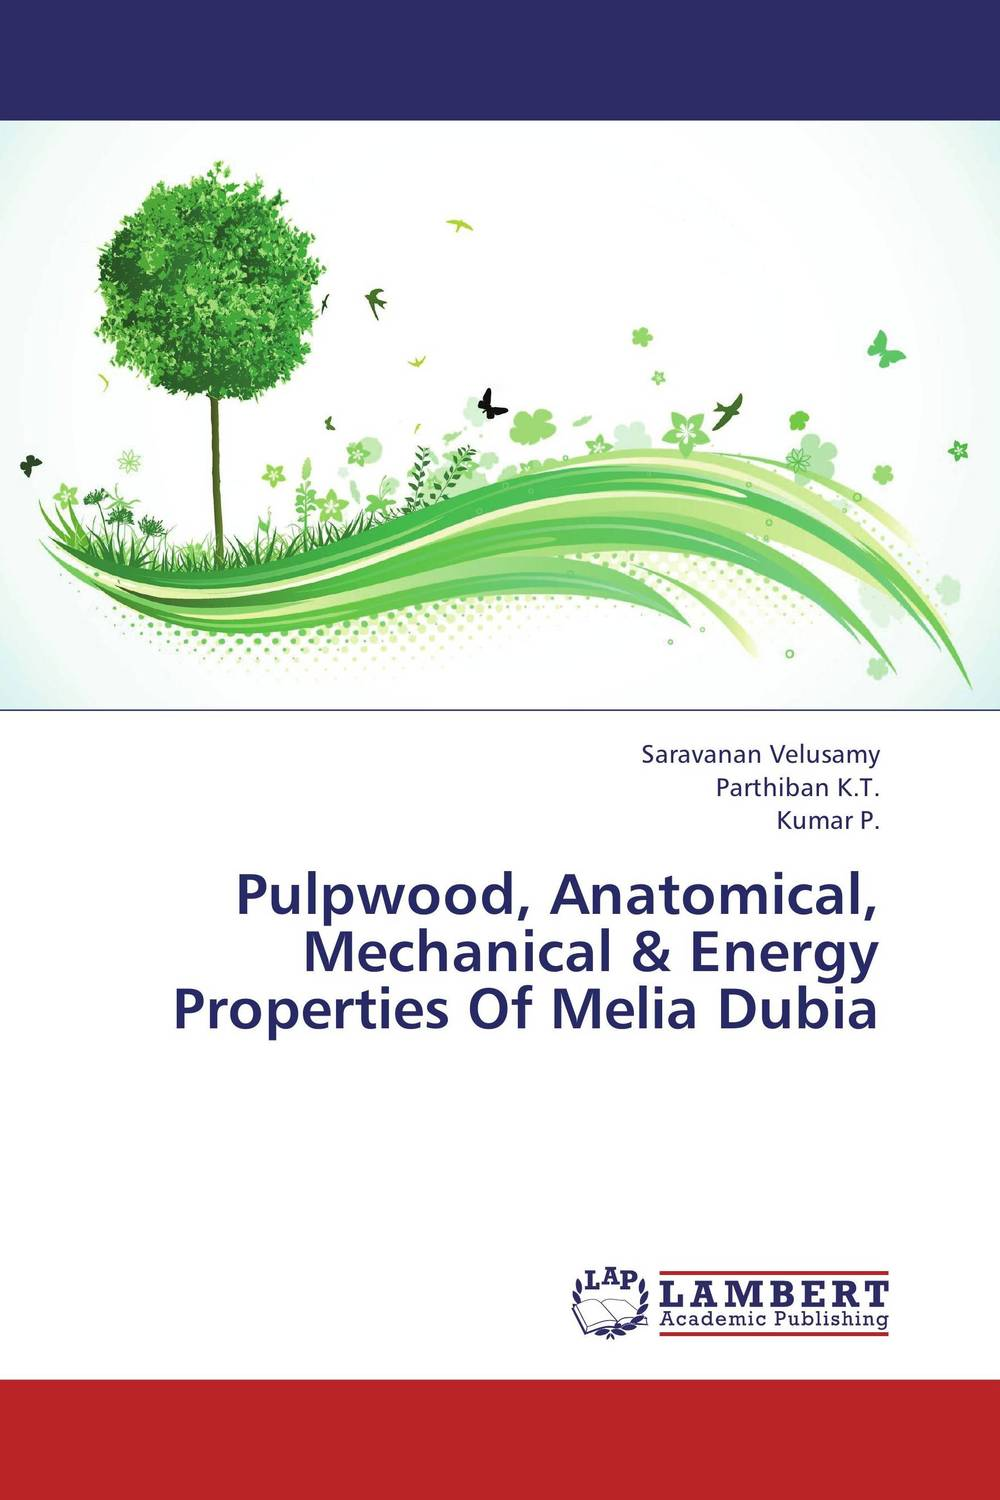 Pulpwood, Anatomical, Mechanical & Energy Properties Of Melia Dubia adding value to the citrus pulp by enzyme biotechnology production